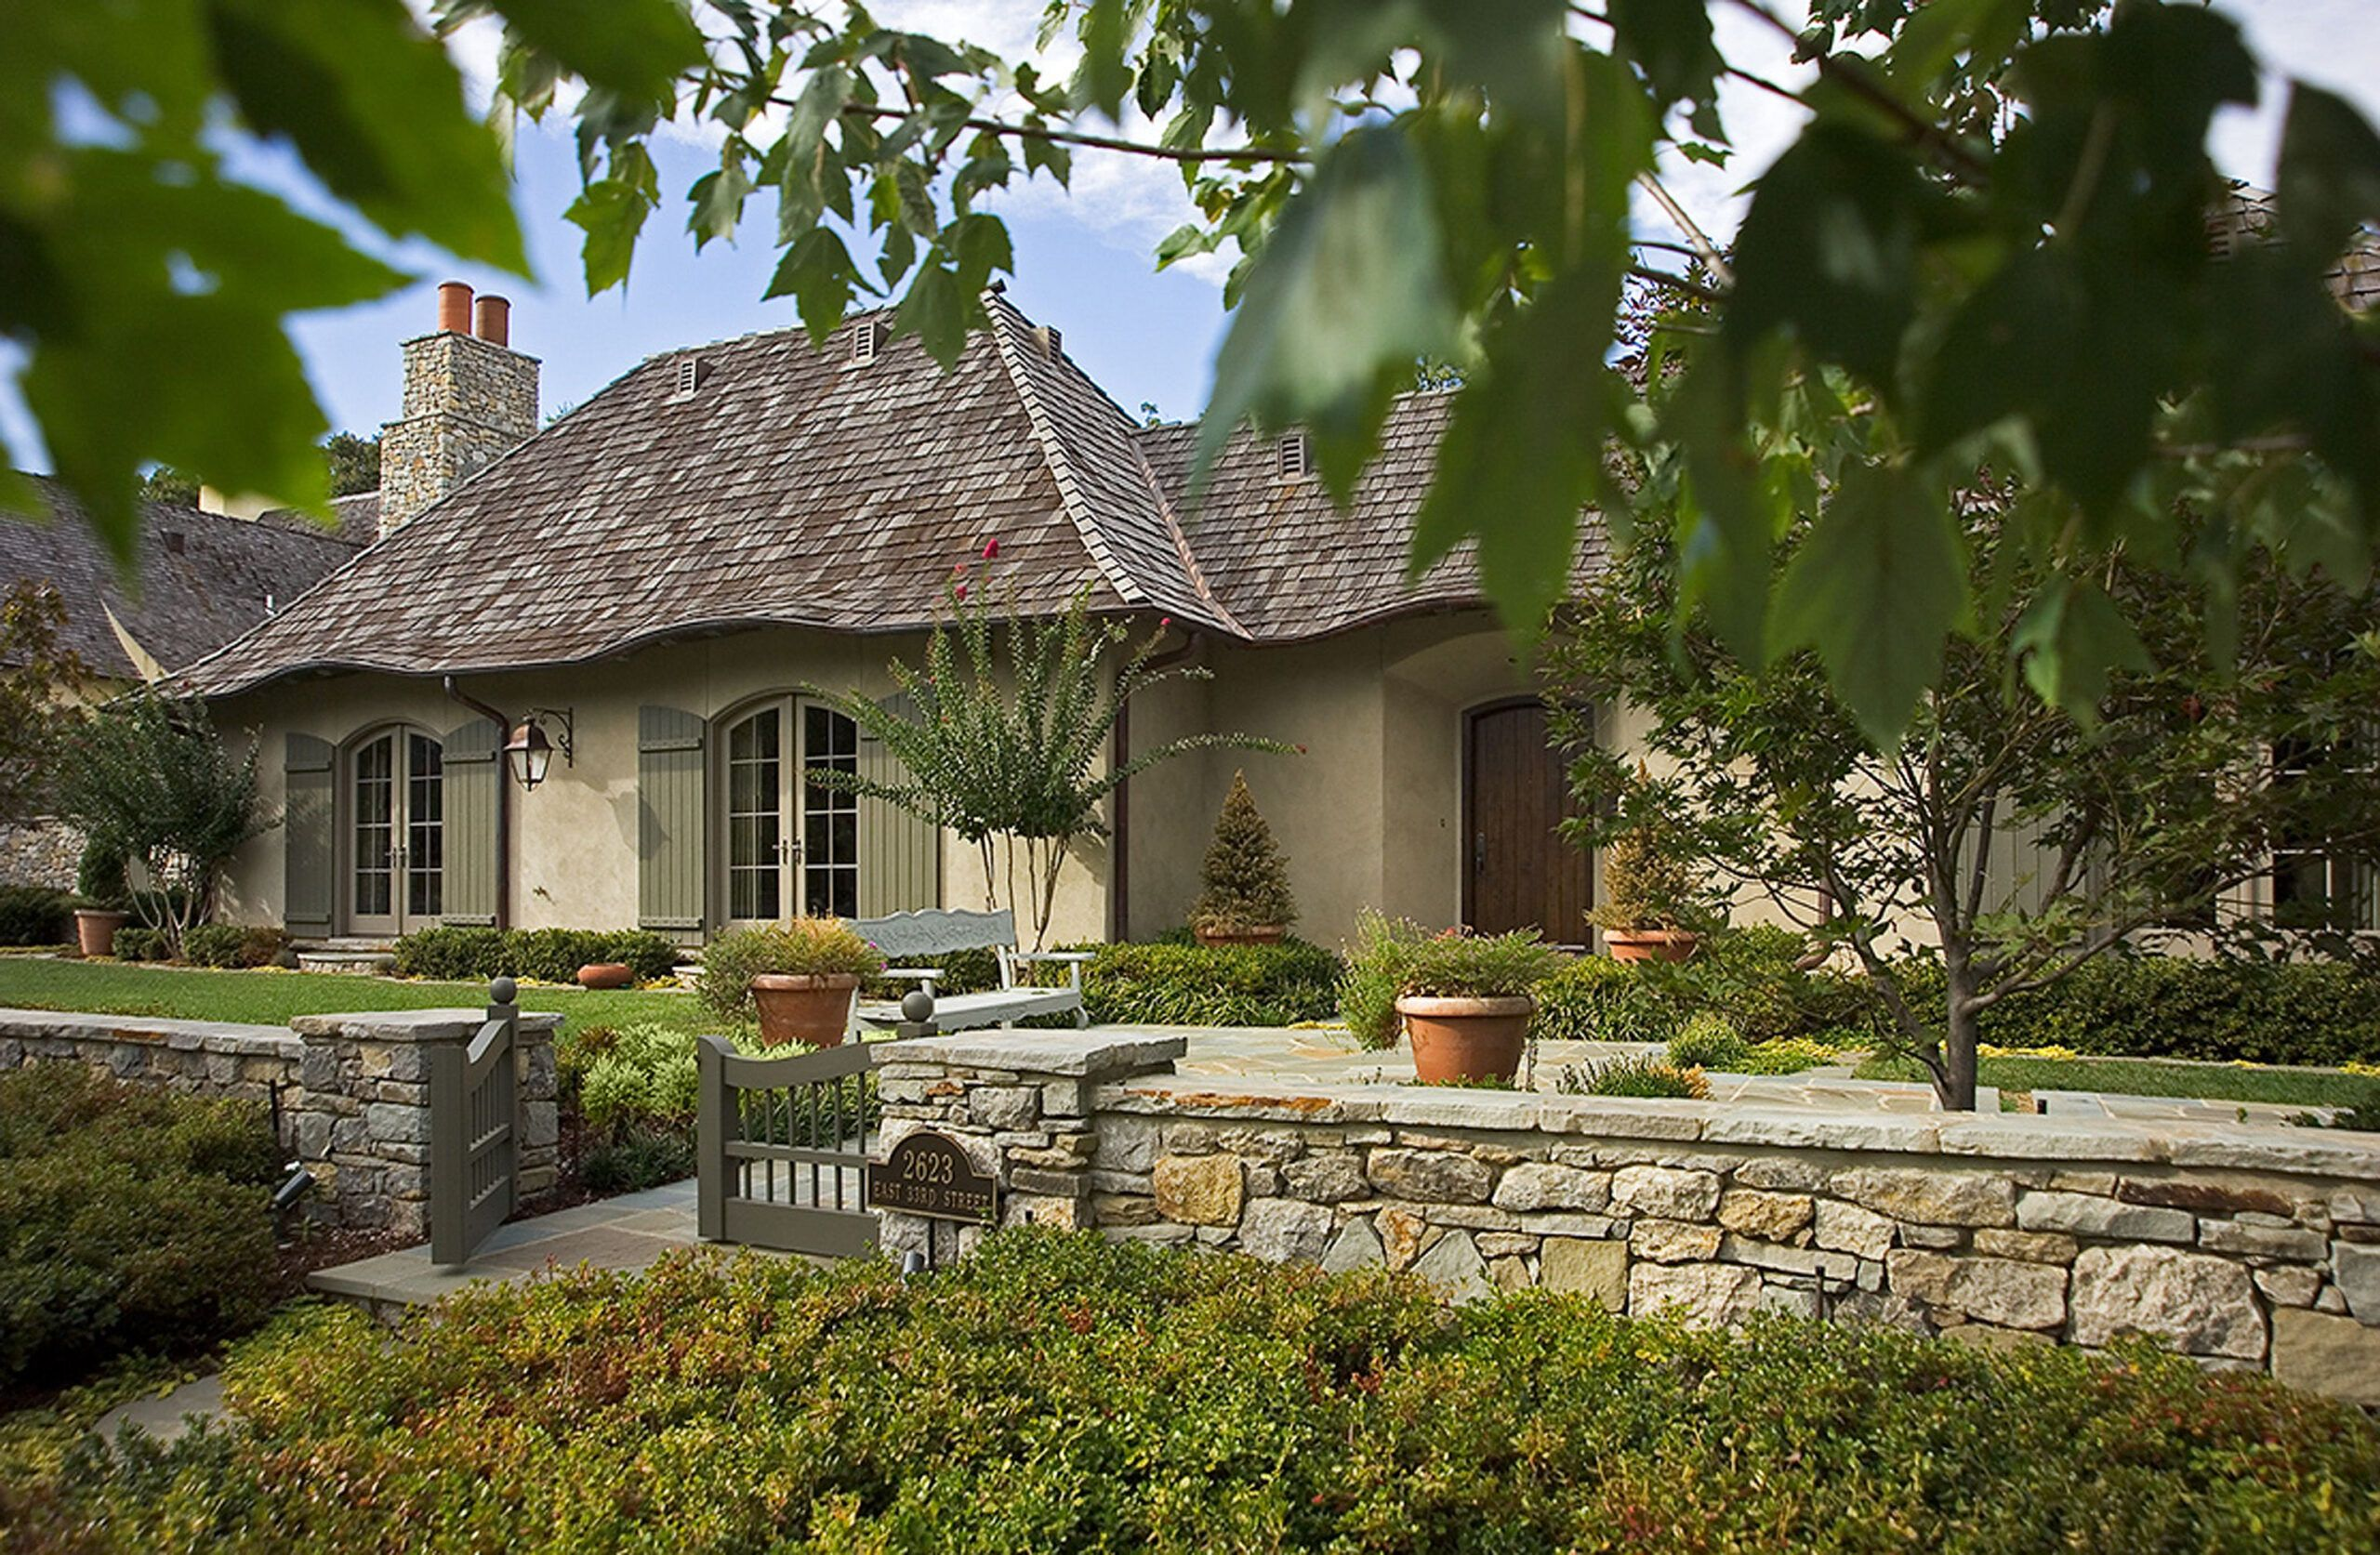 French Country House Plans Jack Arnold French Country House Plans French Country House French Country Exterior